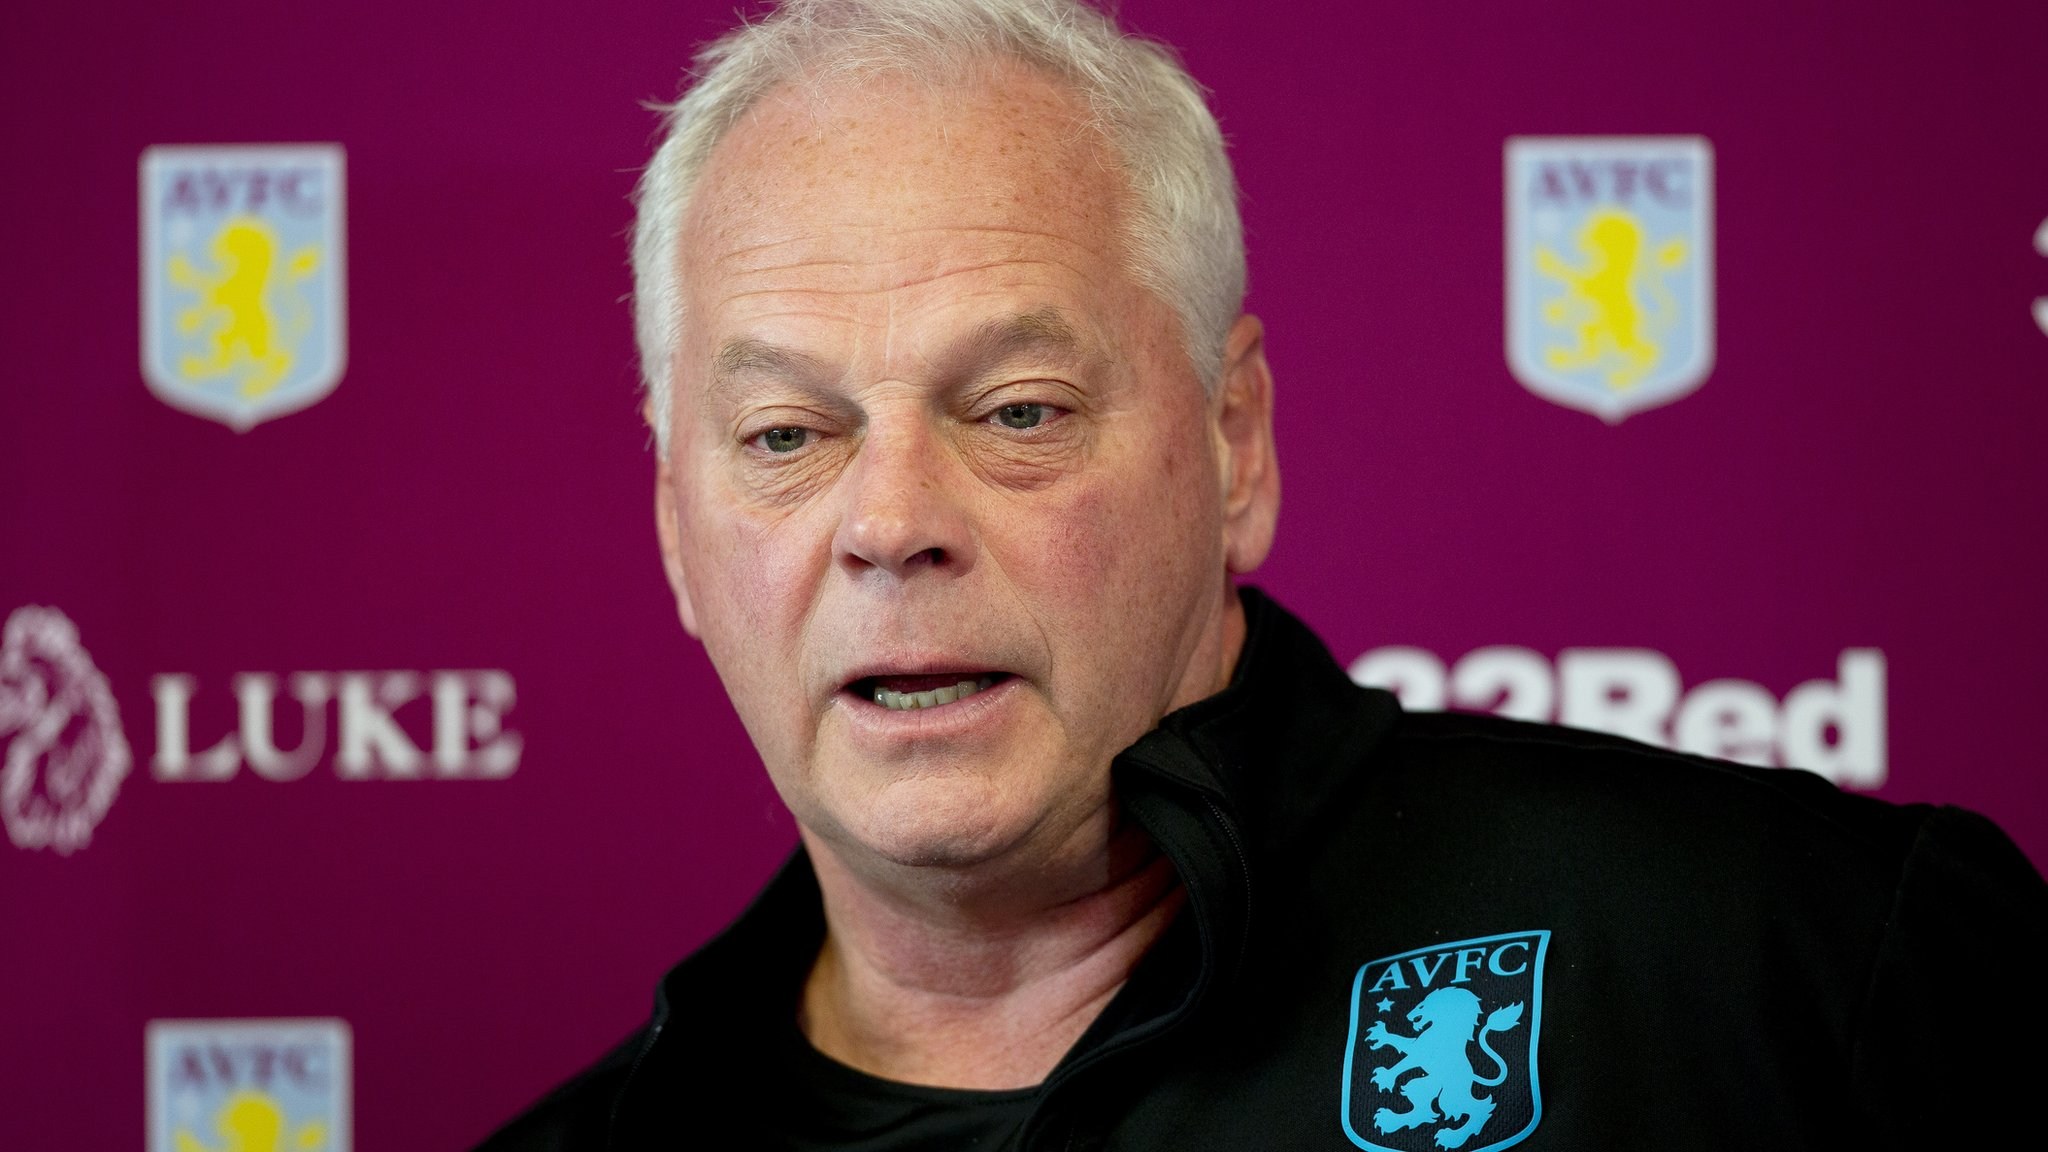 Aston Villa: Kevin MacDonald 'reassigned' from under-23 coach role amid bullying claim